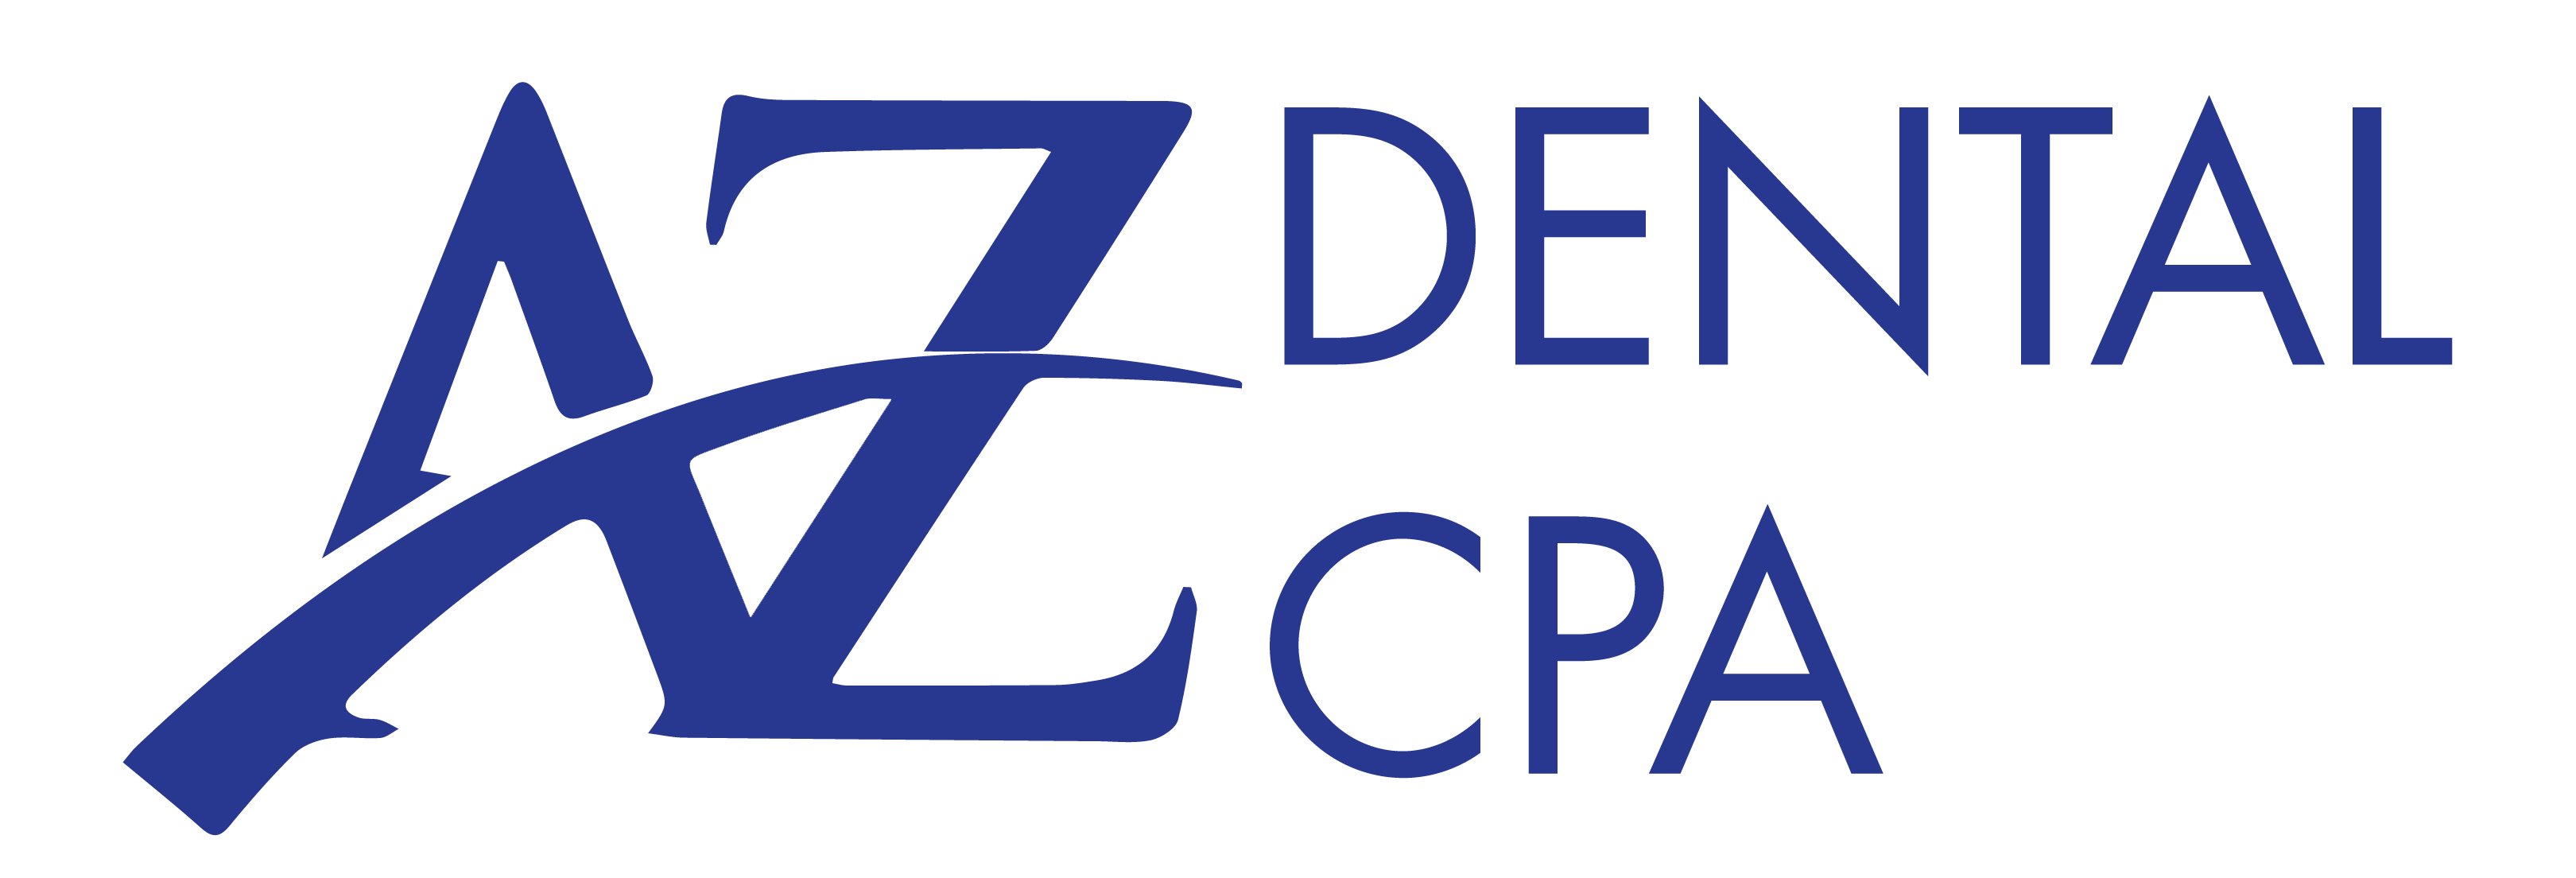 AZ Dental CPA - Financial and Account Services for Dentists